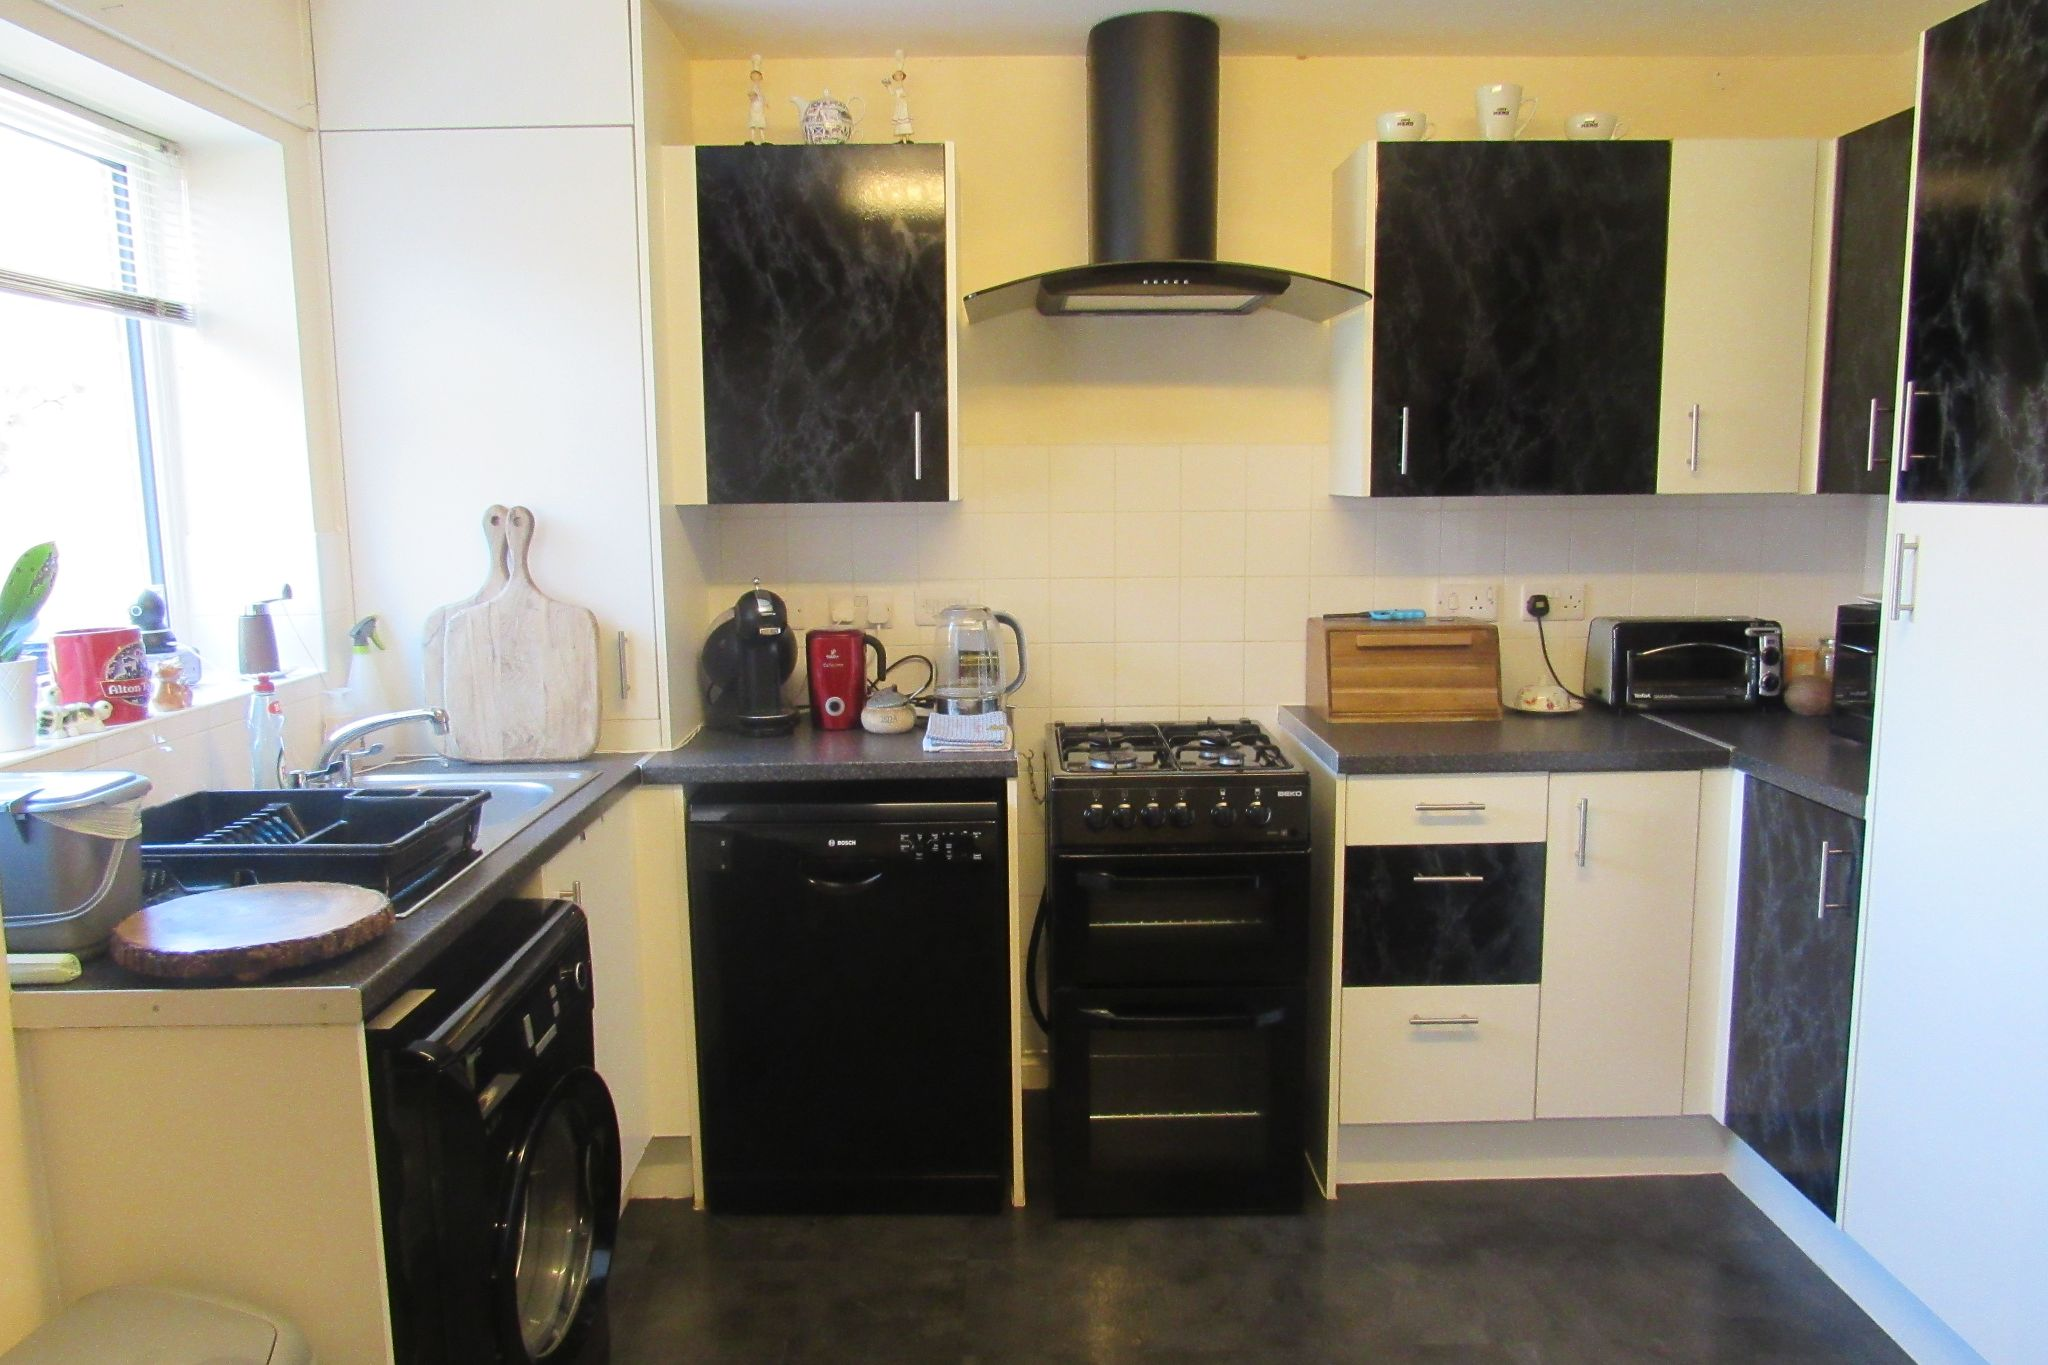 3 bedroom semi-detached house SSTC in Manchester - Photograph 6.